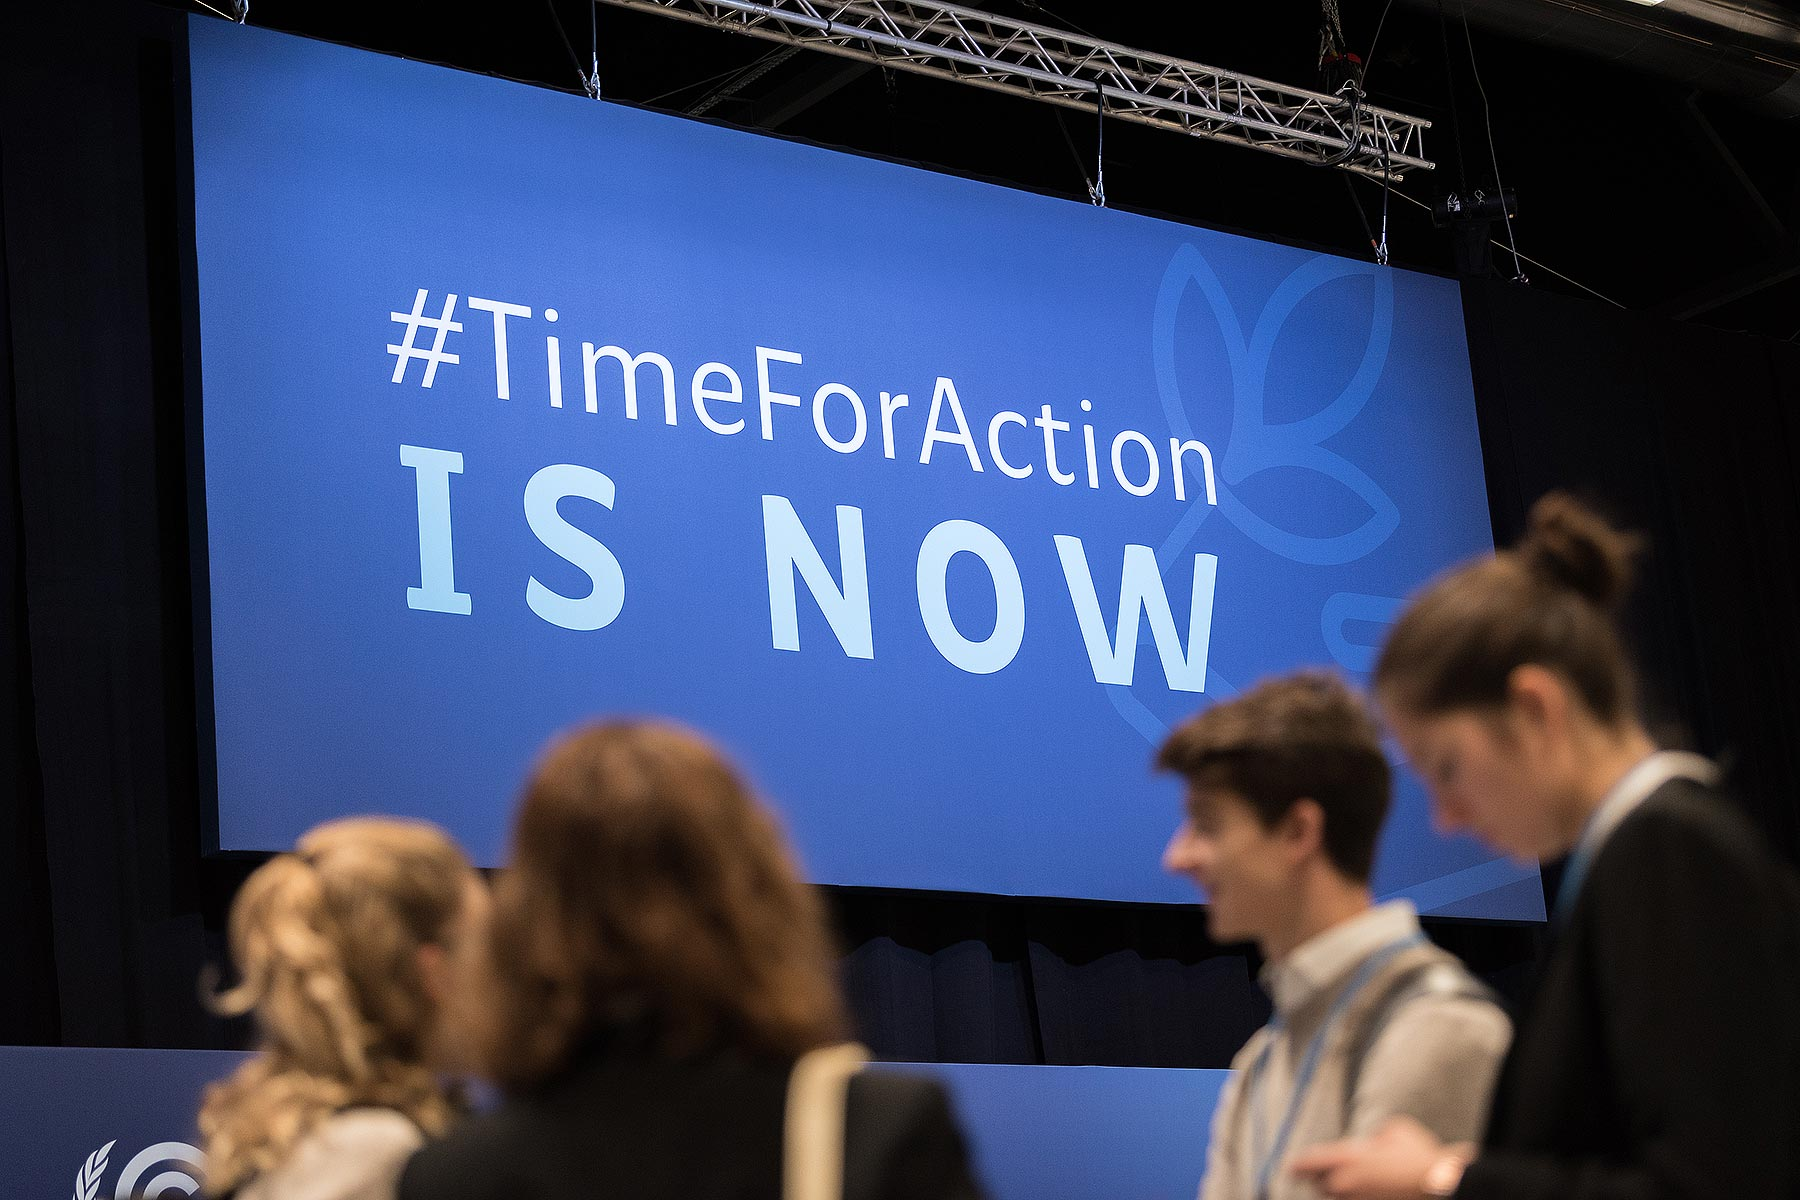 #TimeForAction is Now reads a sign at COP25, reflecting the need for urgent action to mitigate the global climate crisis. Photo: LWF/Albin Hillert